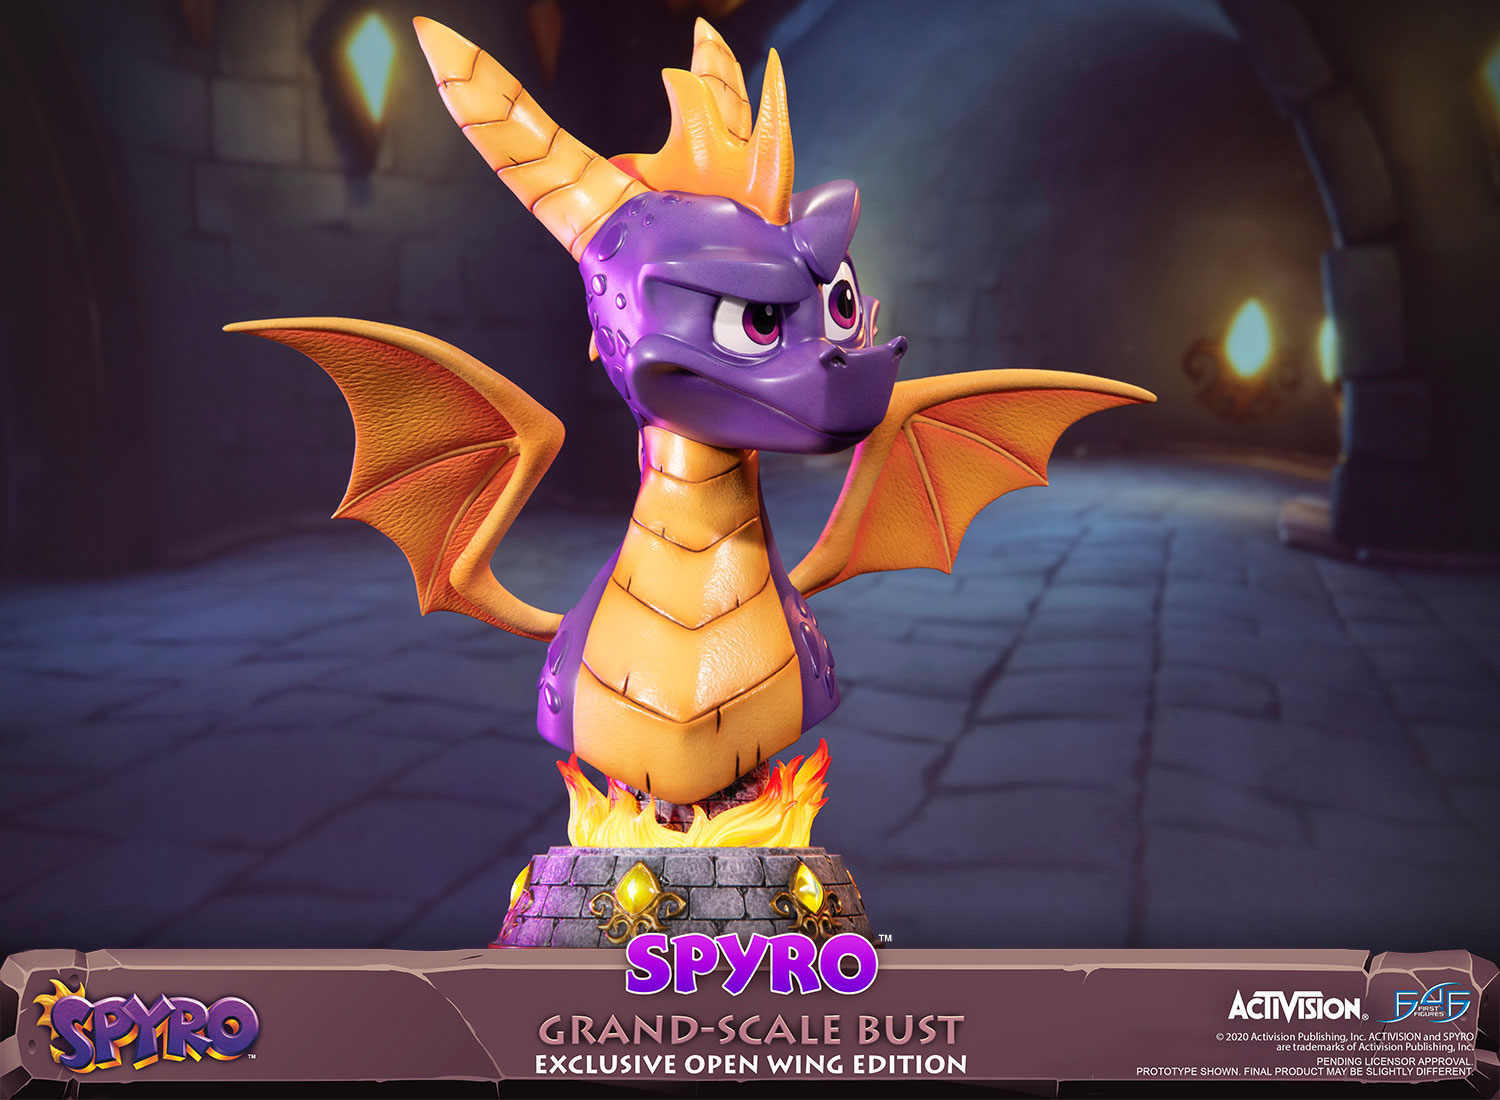 Spyro™ Grand-Scale Bust (Exclusive Open Wing Edition)